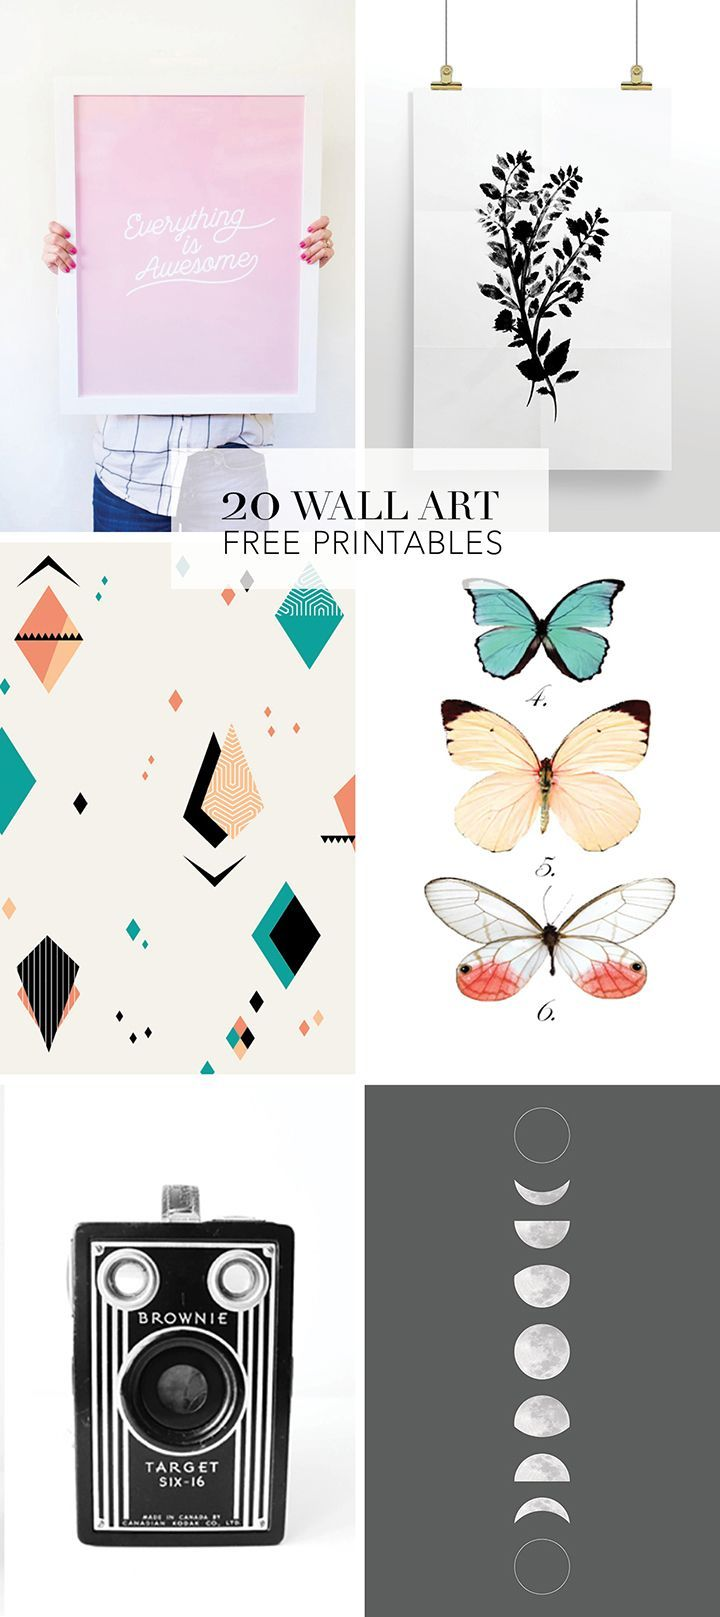 20 favorite wall art free printables